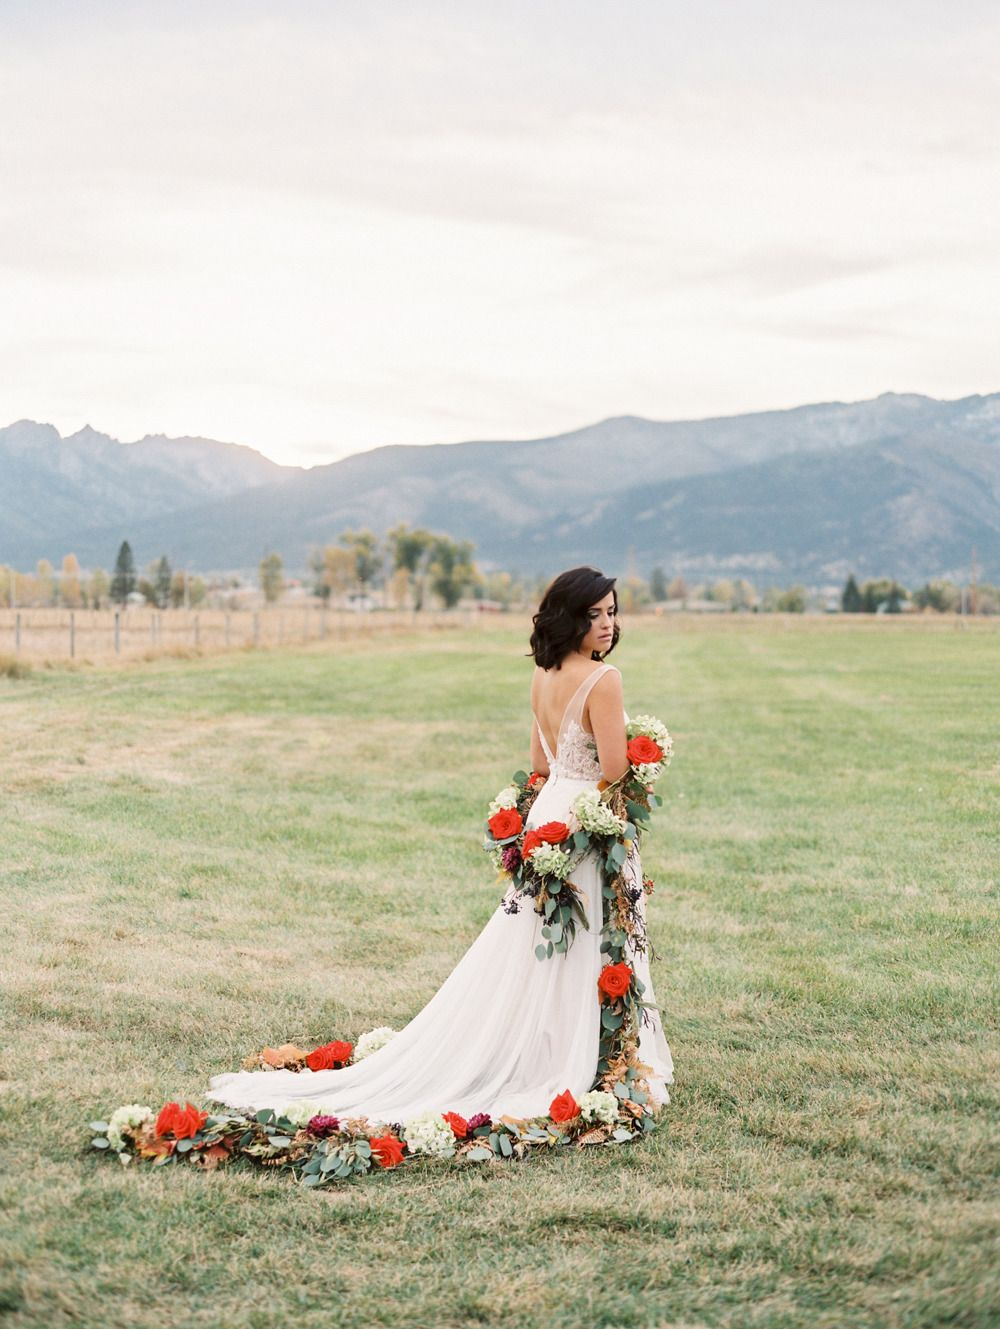 Montana wedding photography rebecca hollis rebeccahollis